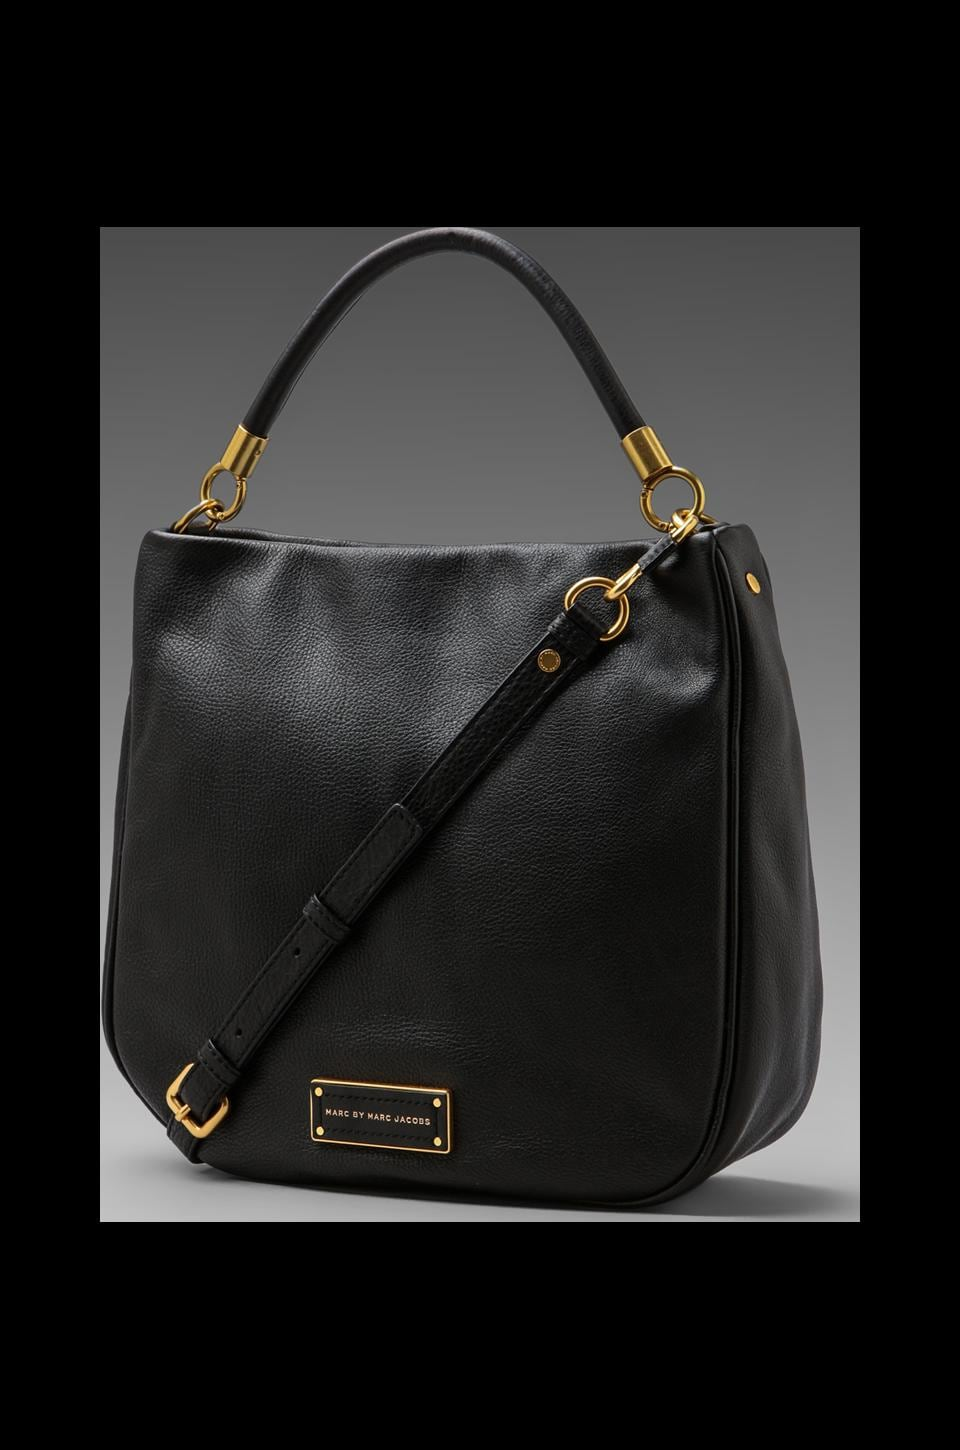 Marc by Marc Jacobs Too Hot to Handle Hobo in Black